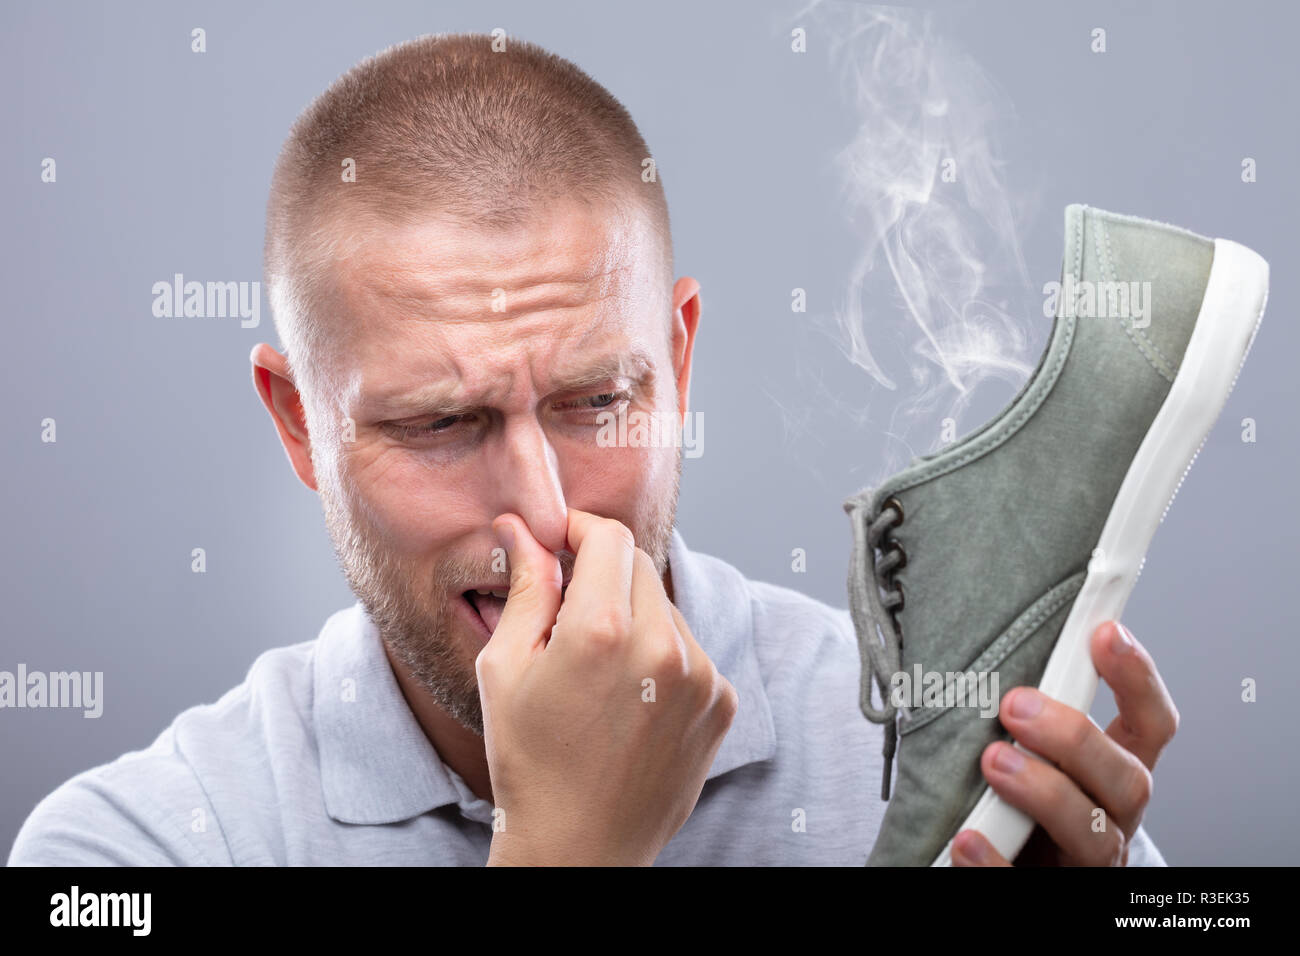 Close-up Of A Man Covering His Nose While Holding Stinky Shoe On Grey Background - Stock Image